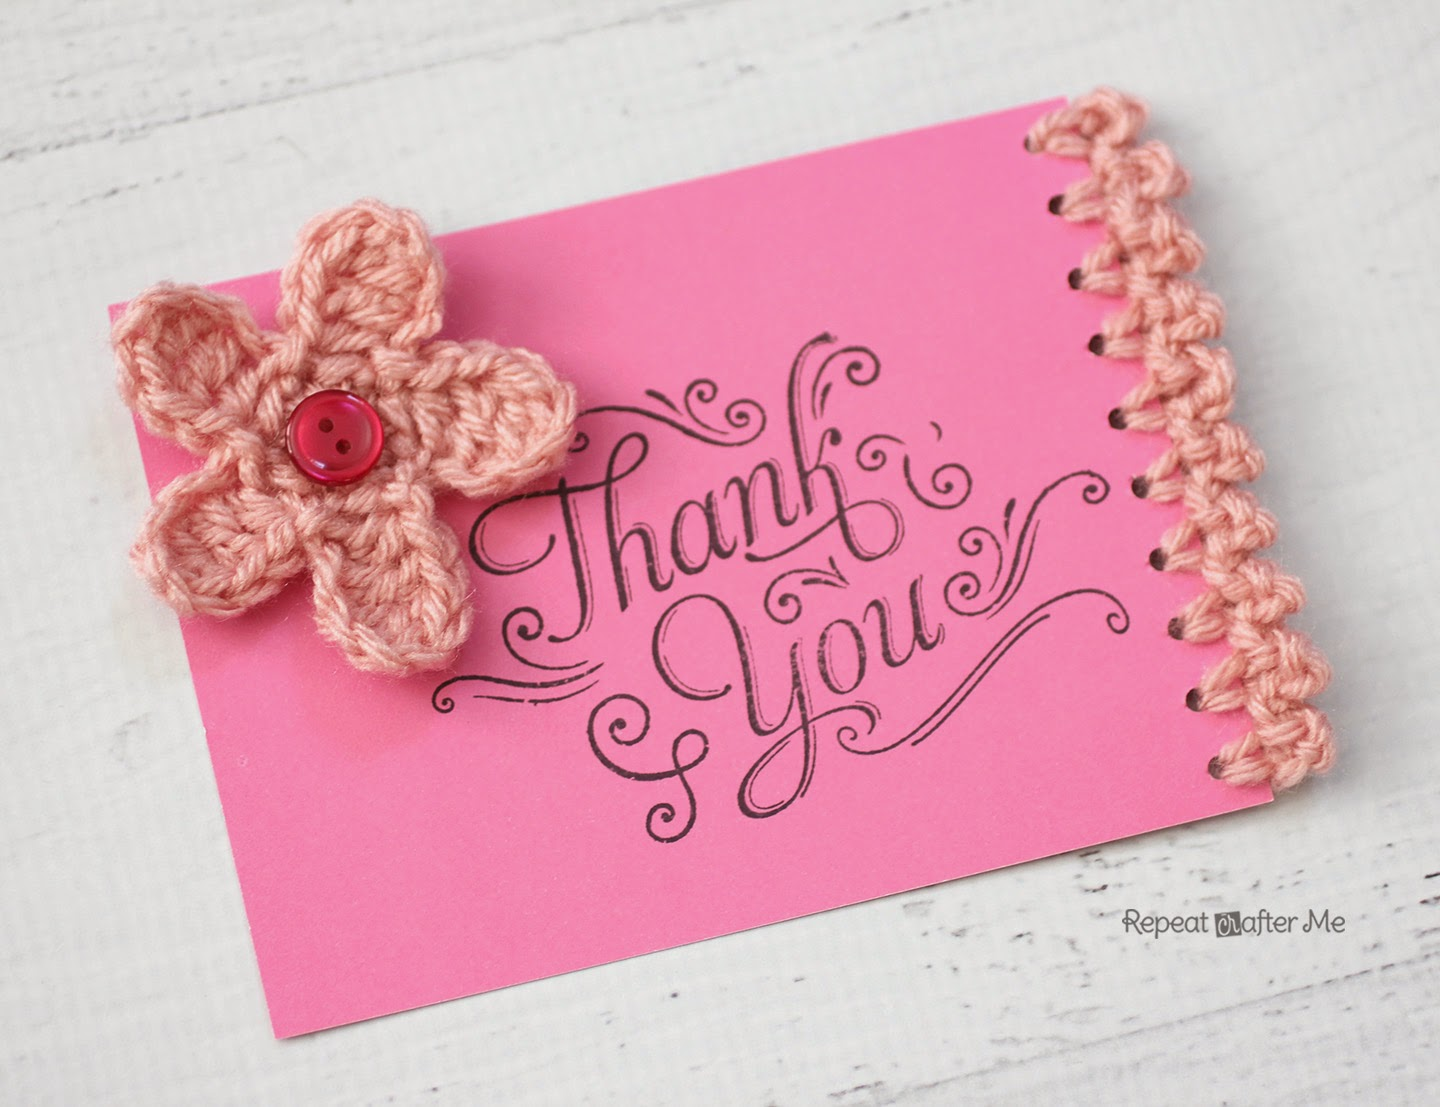 50 handmade cards do small things with great love thankyoucard1 kristyandbryce Images